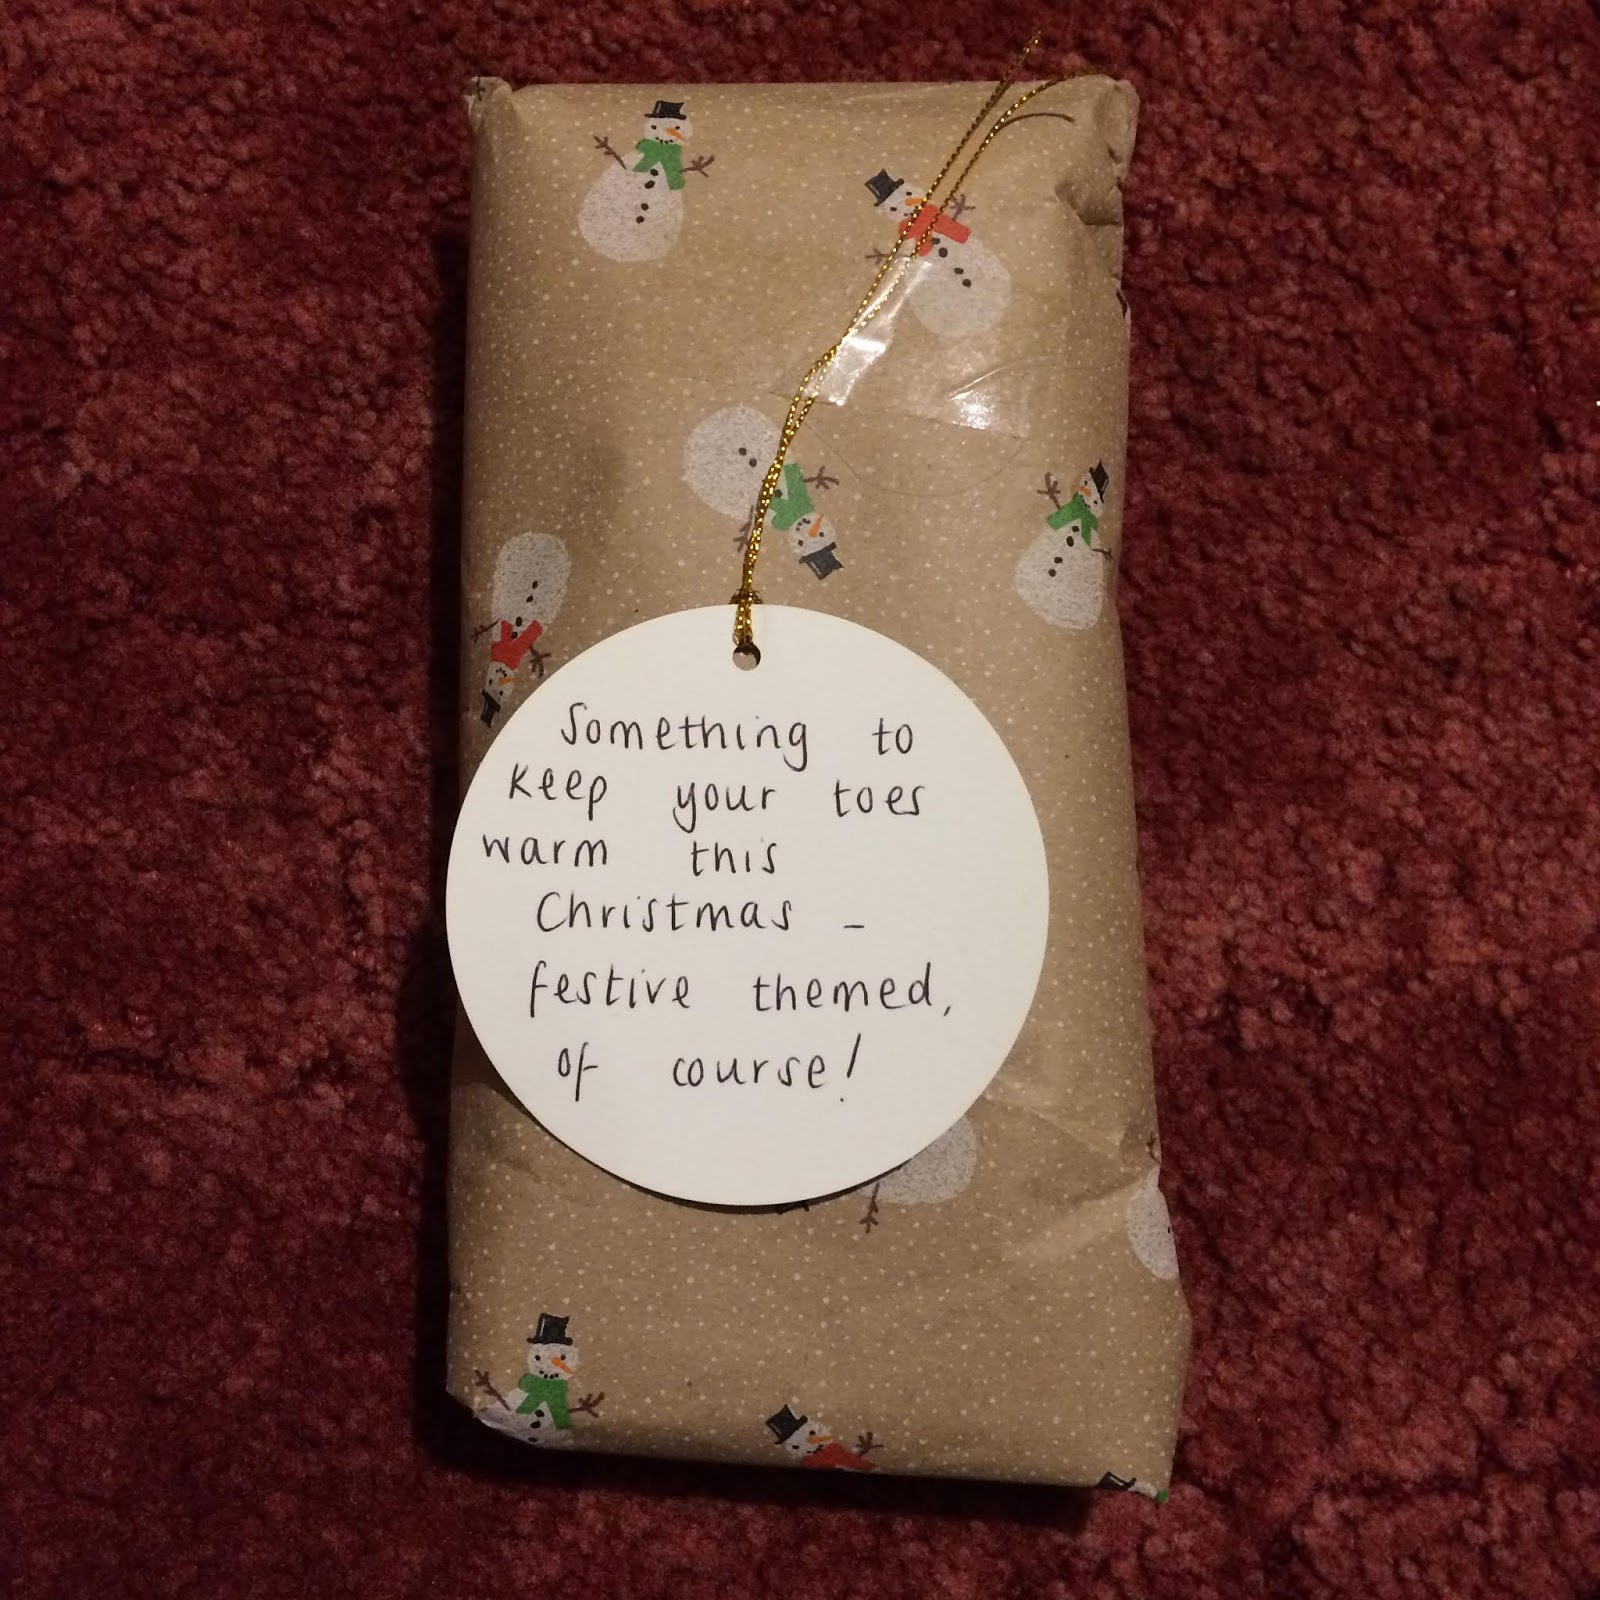 A wrapped present with a tag reading, Something to keep your toes warm this Christmas - festive themed, of course!